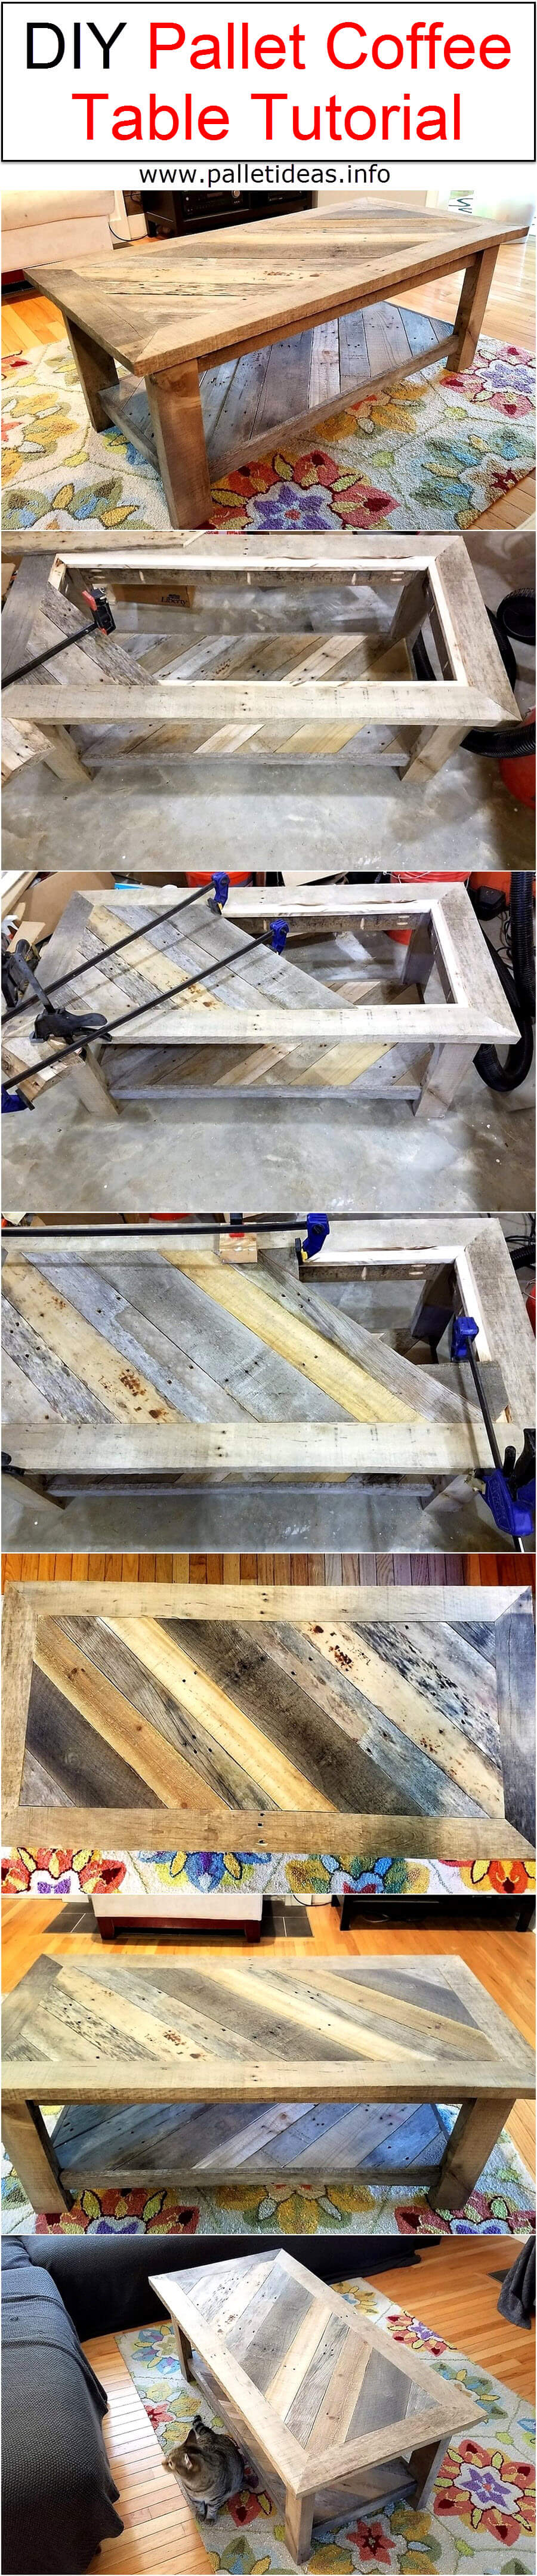 Save that Pallet! Coffee Table